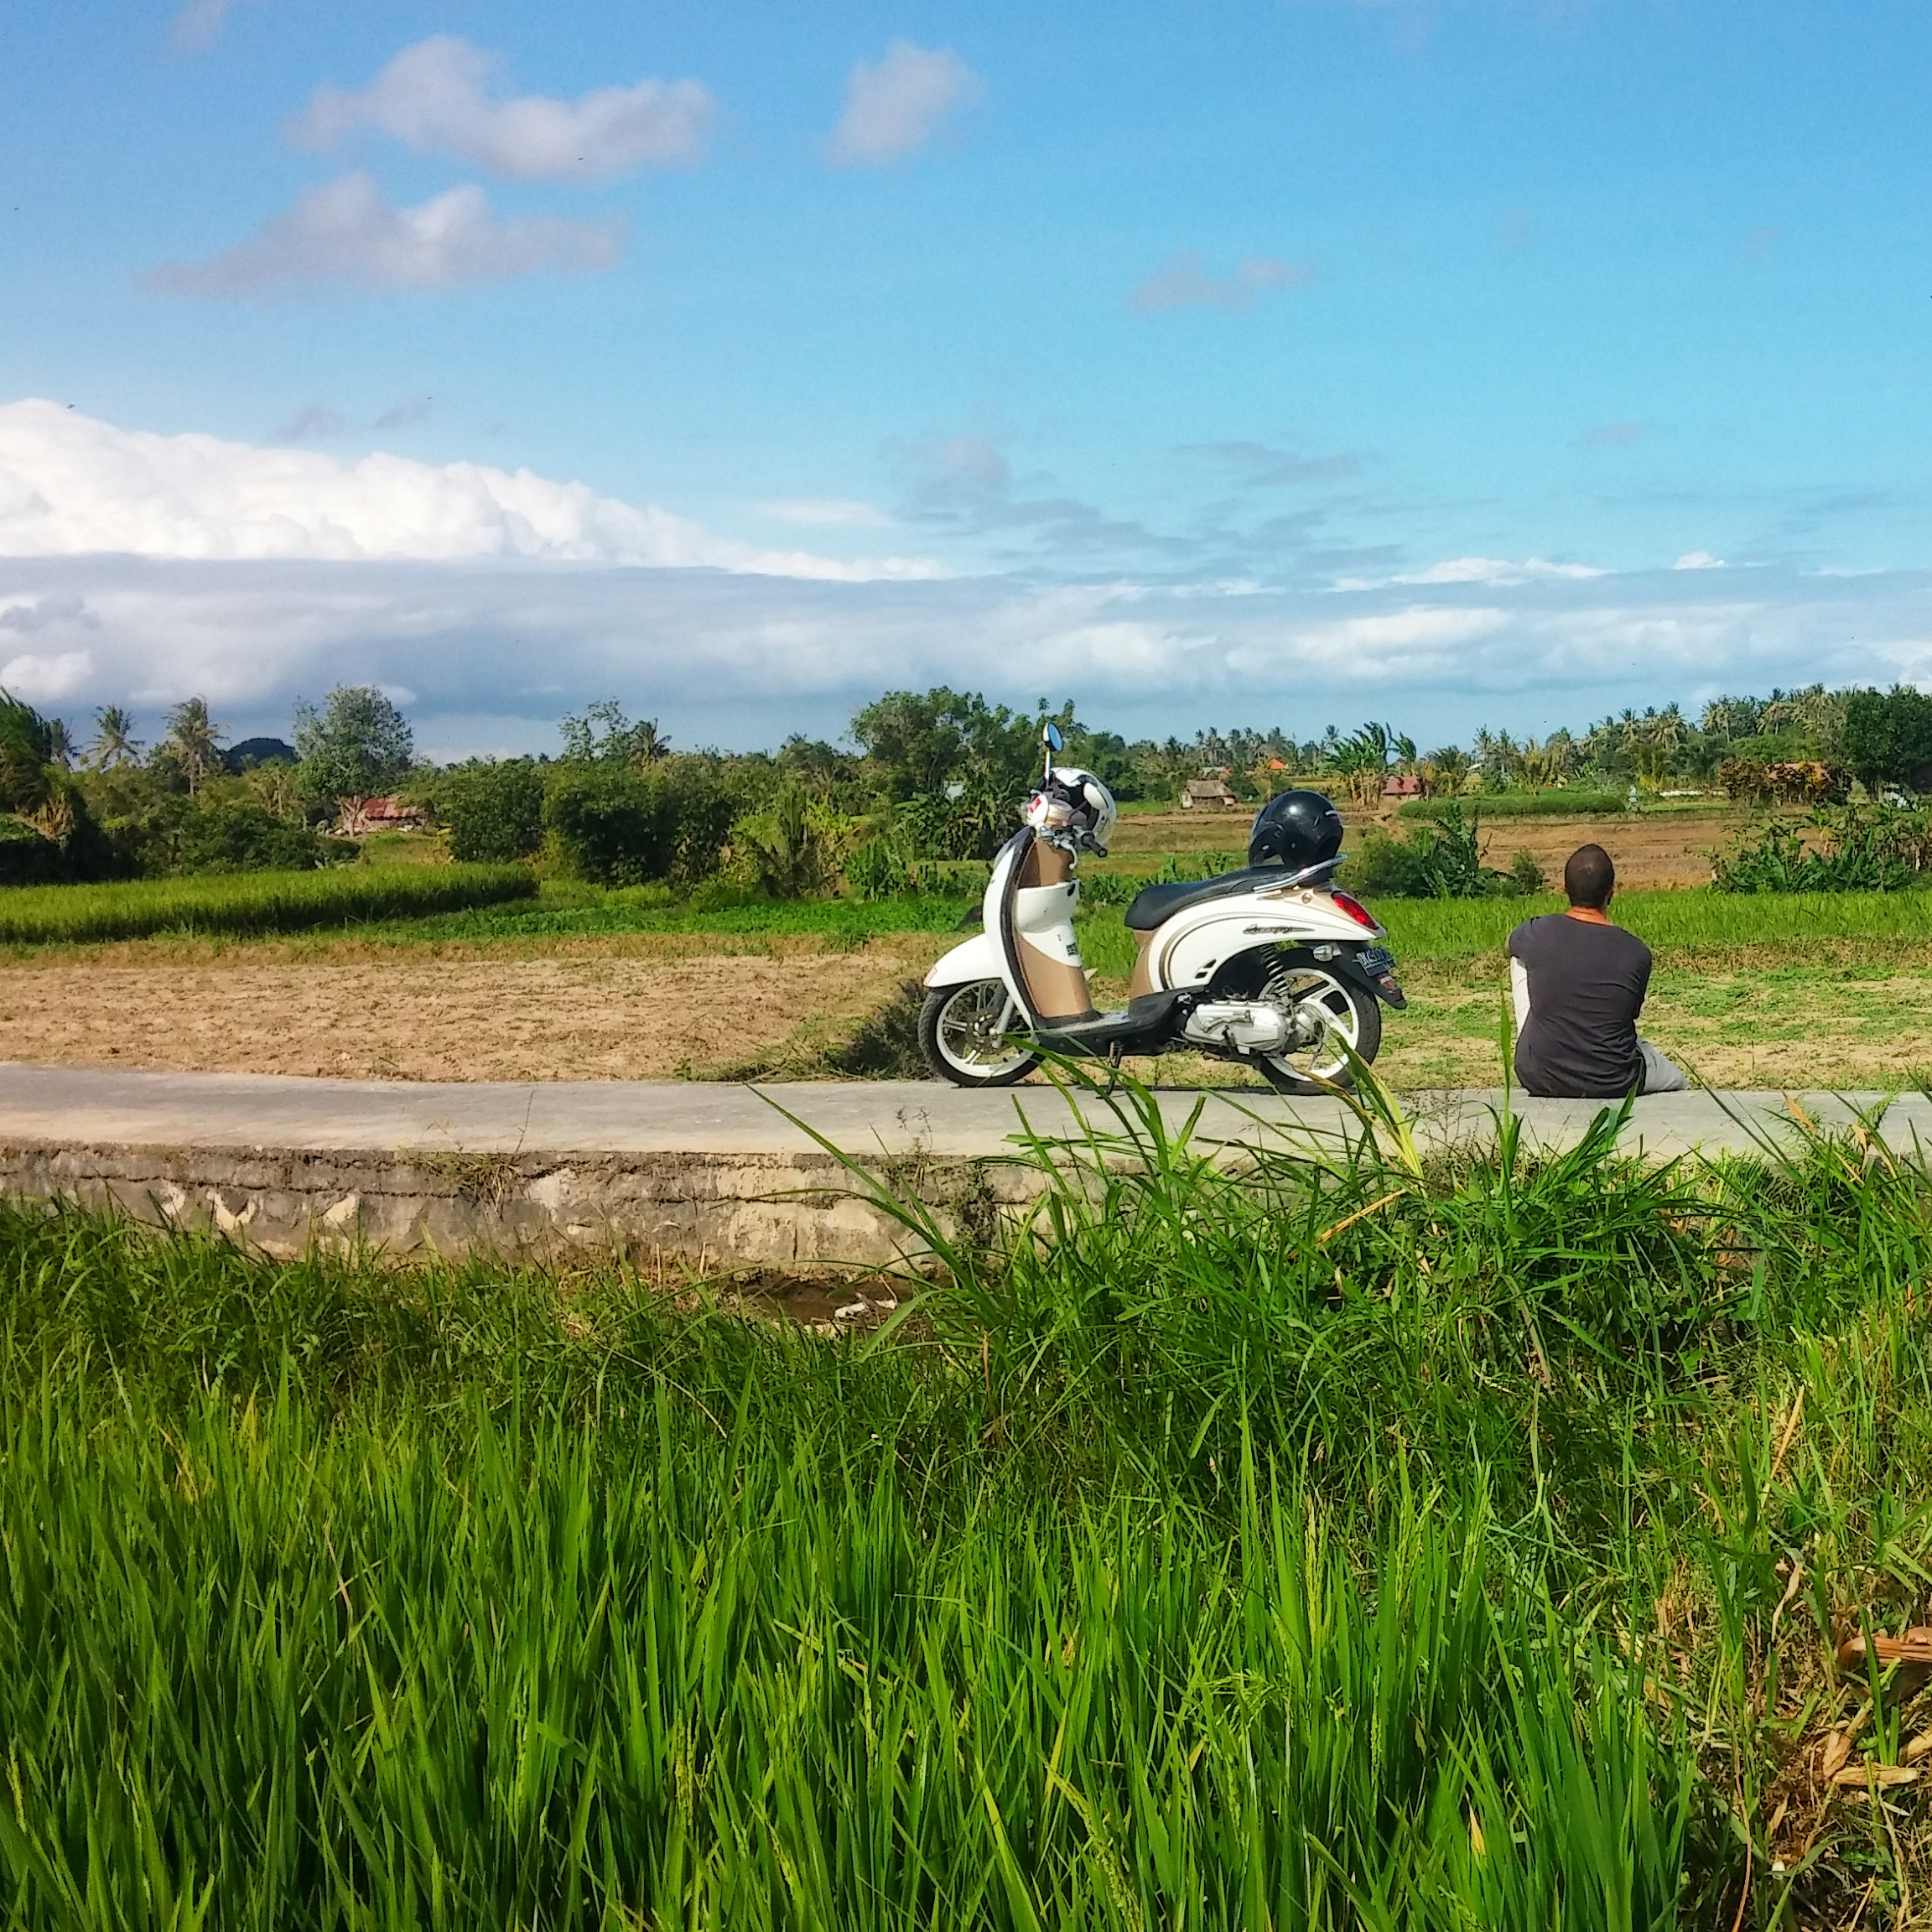 We were so frustrated with being lost in the endless maze of rice paddies! The farmers were even giving us funny looks. We finally gave up, hopped off the bike and stormed off in opposite directions.